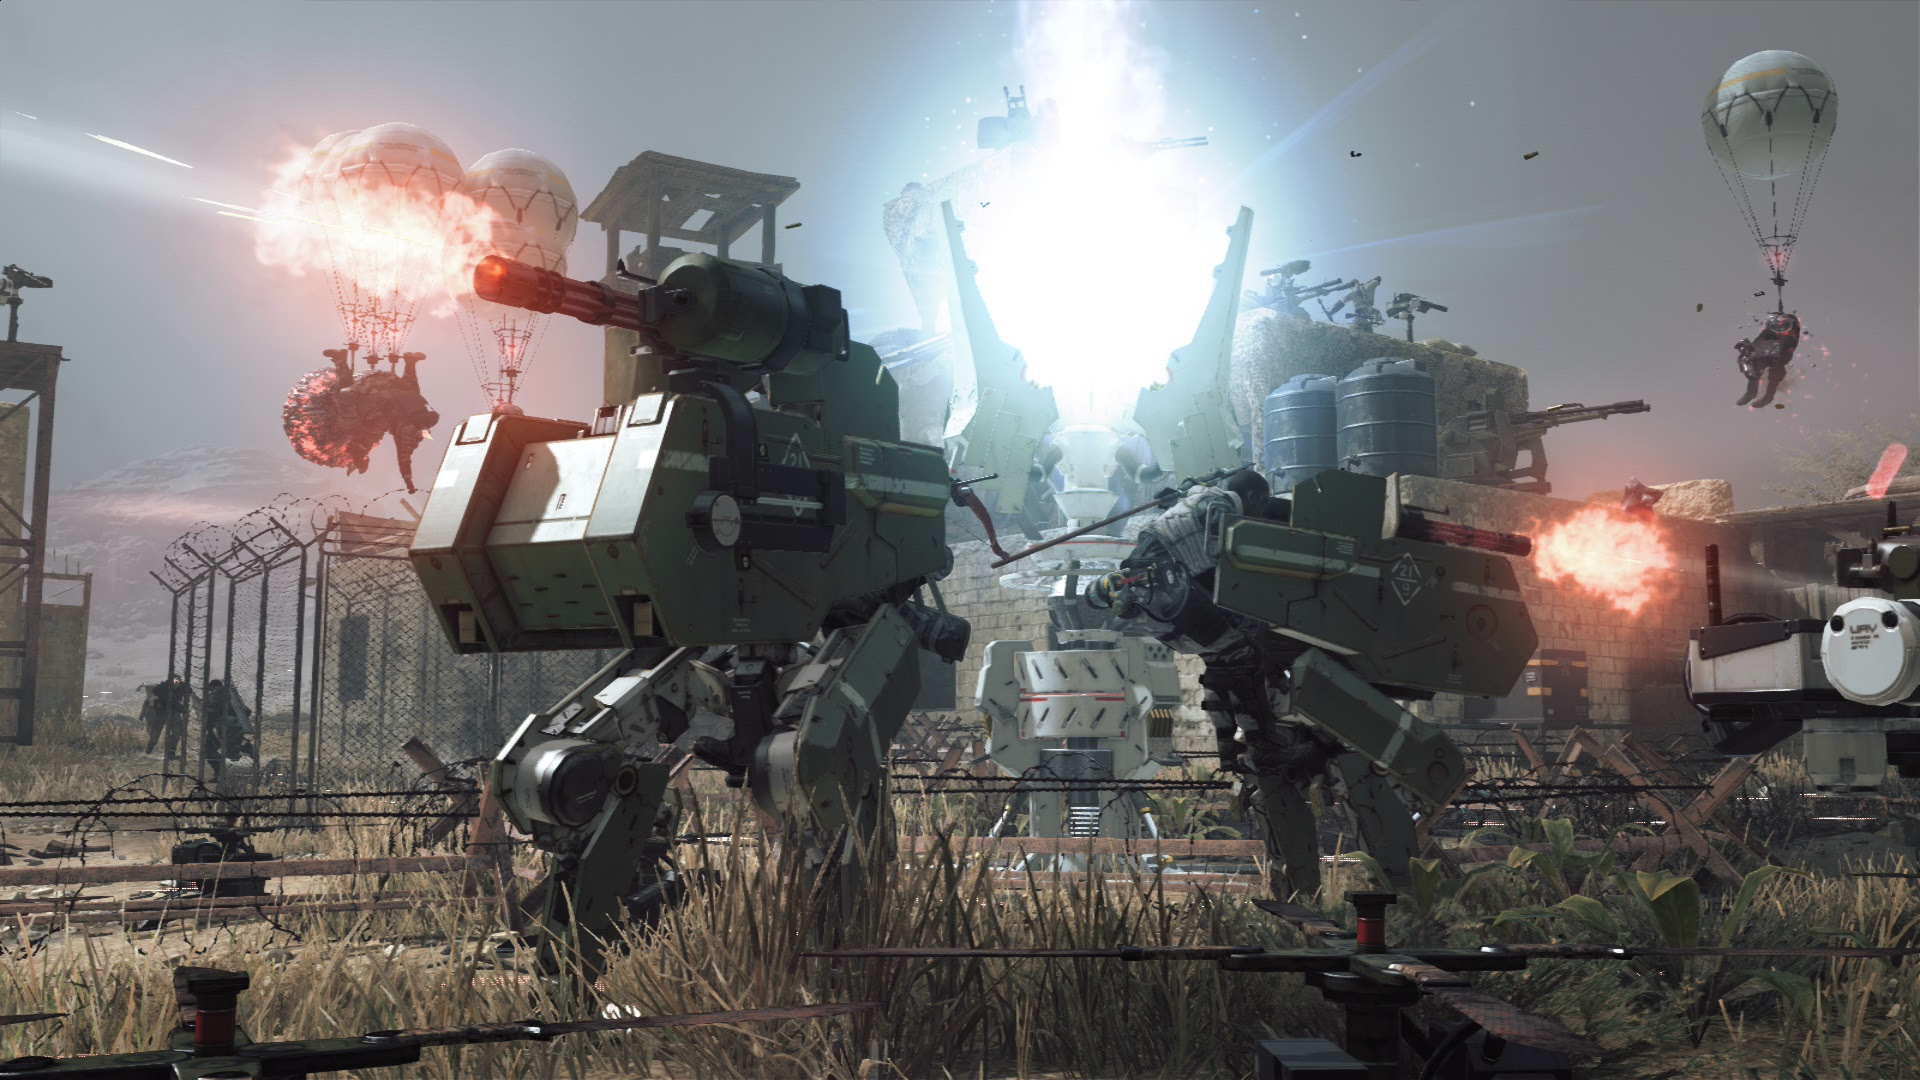 Hands-on with Metal Gear Survive was a bummer screenshot